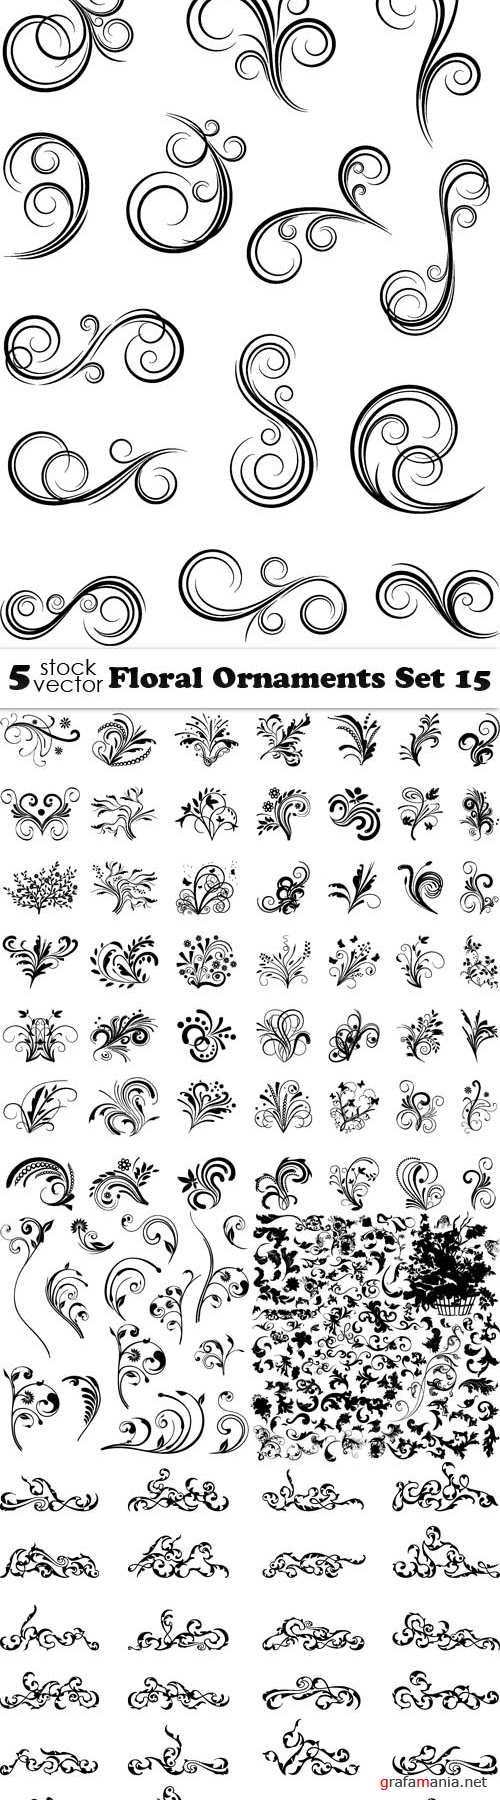 Vectors - Floral Ornaments Set 15